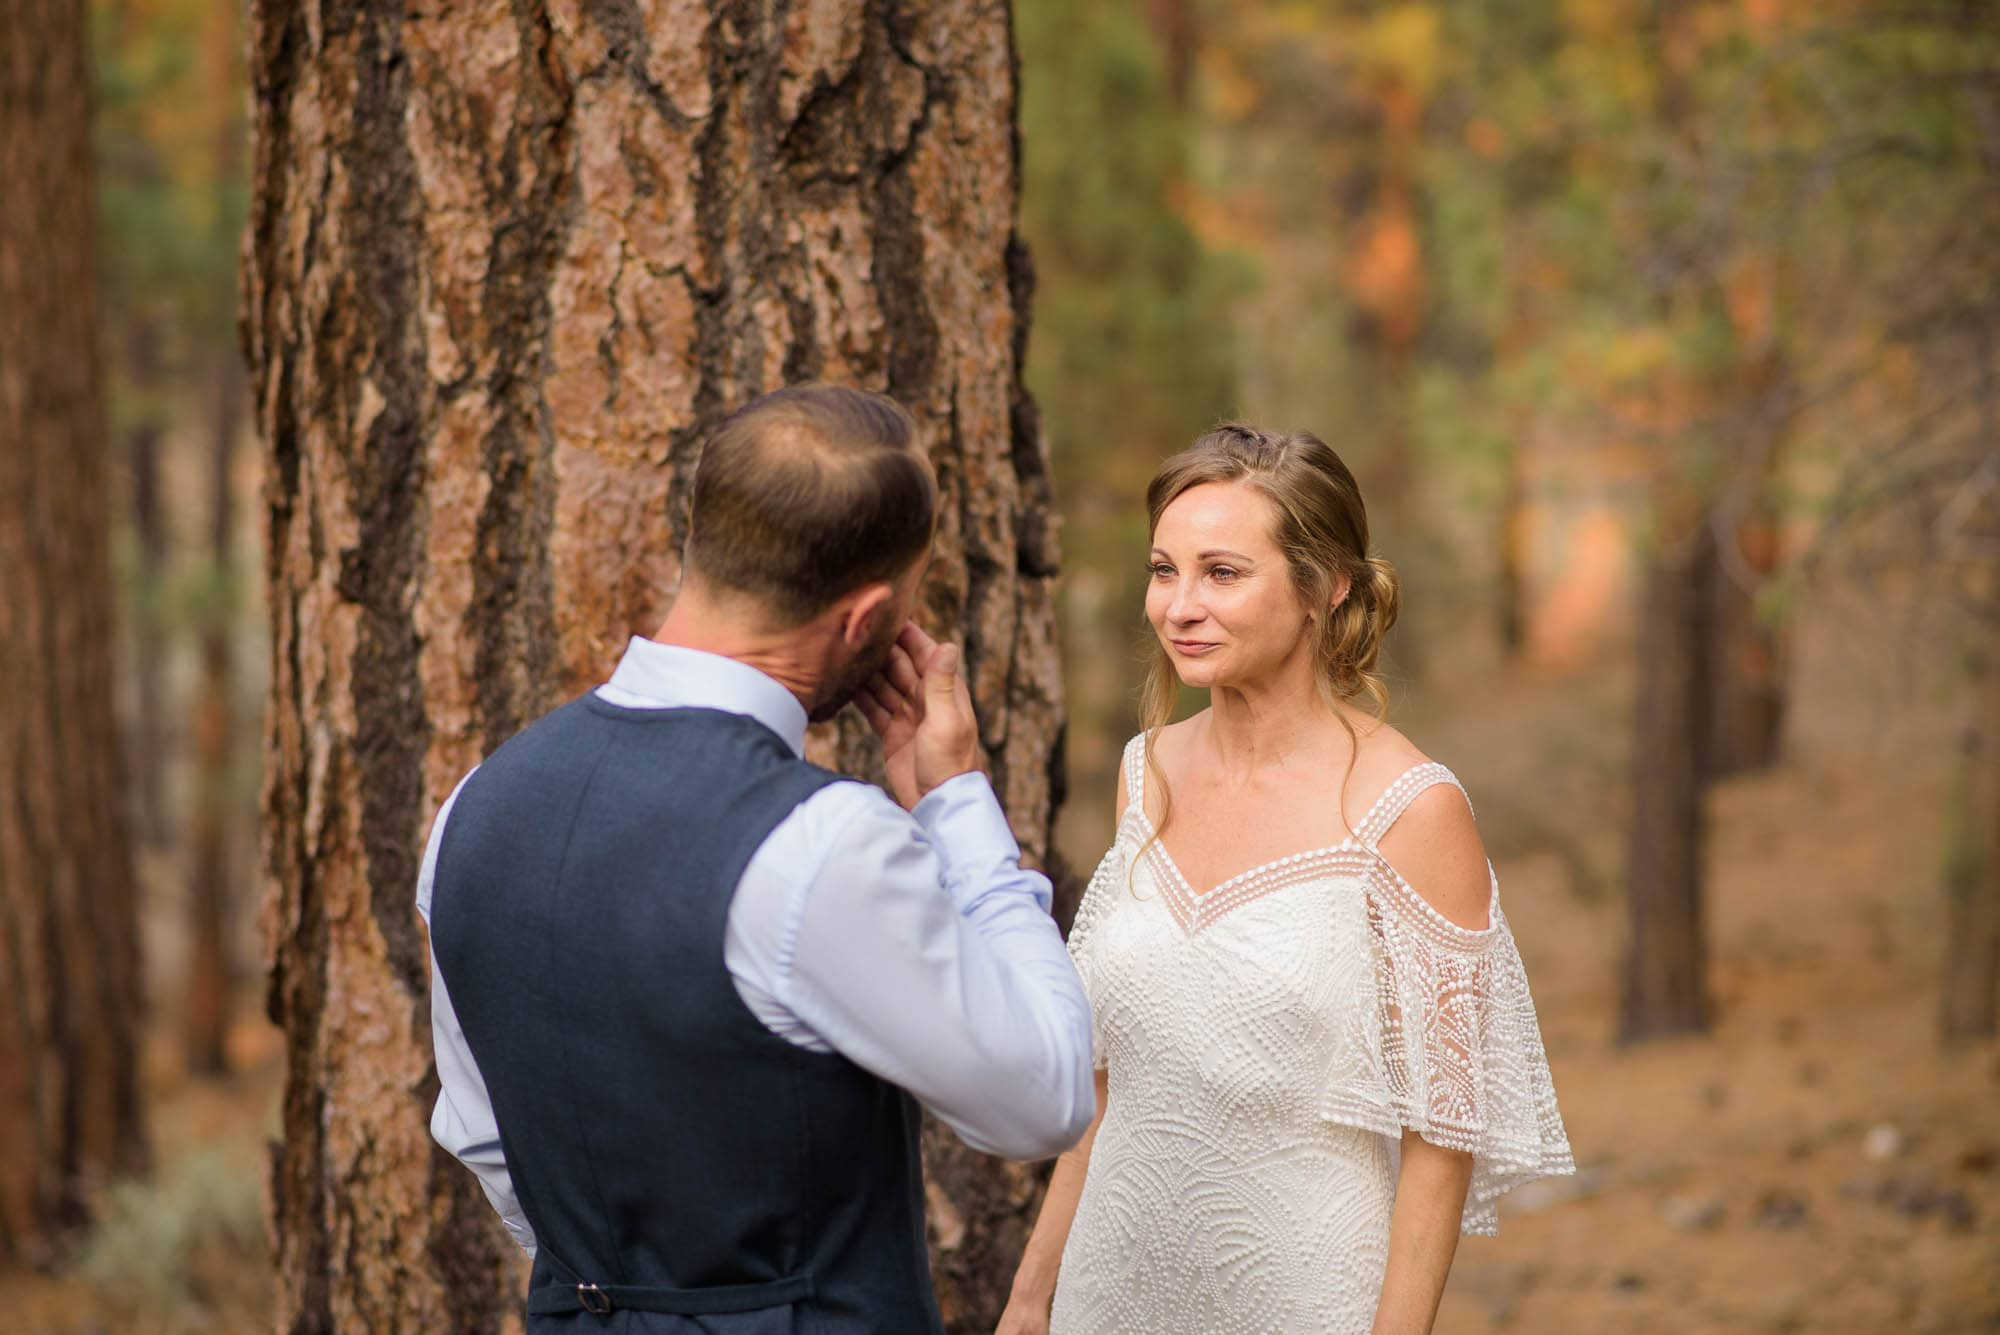 024_Alan_and_Heidi_Big_Bear_Elopement_Holly_Sean